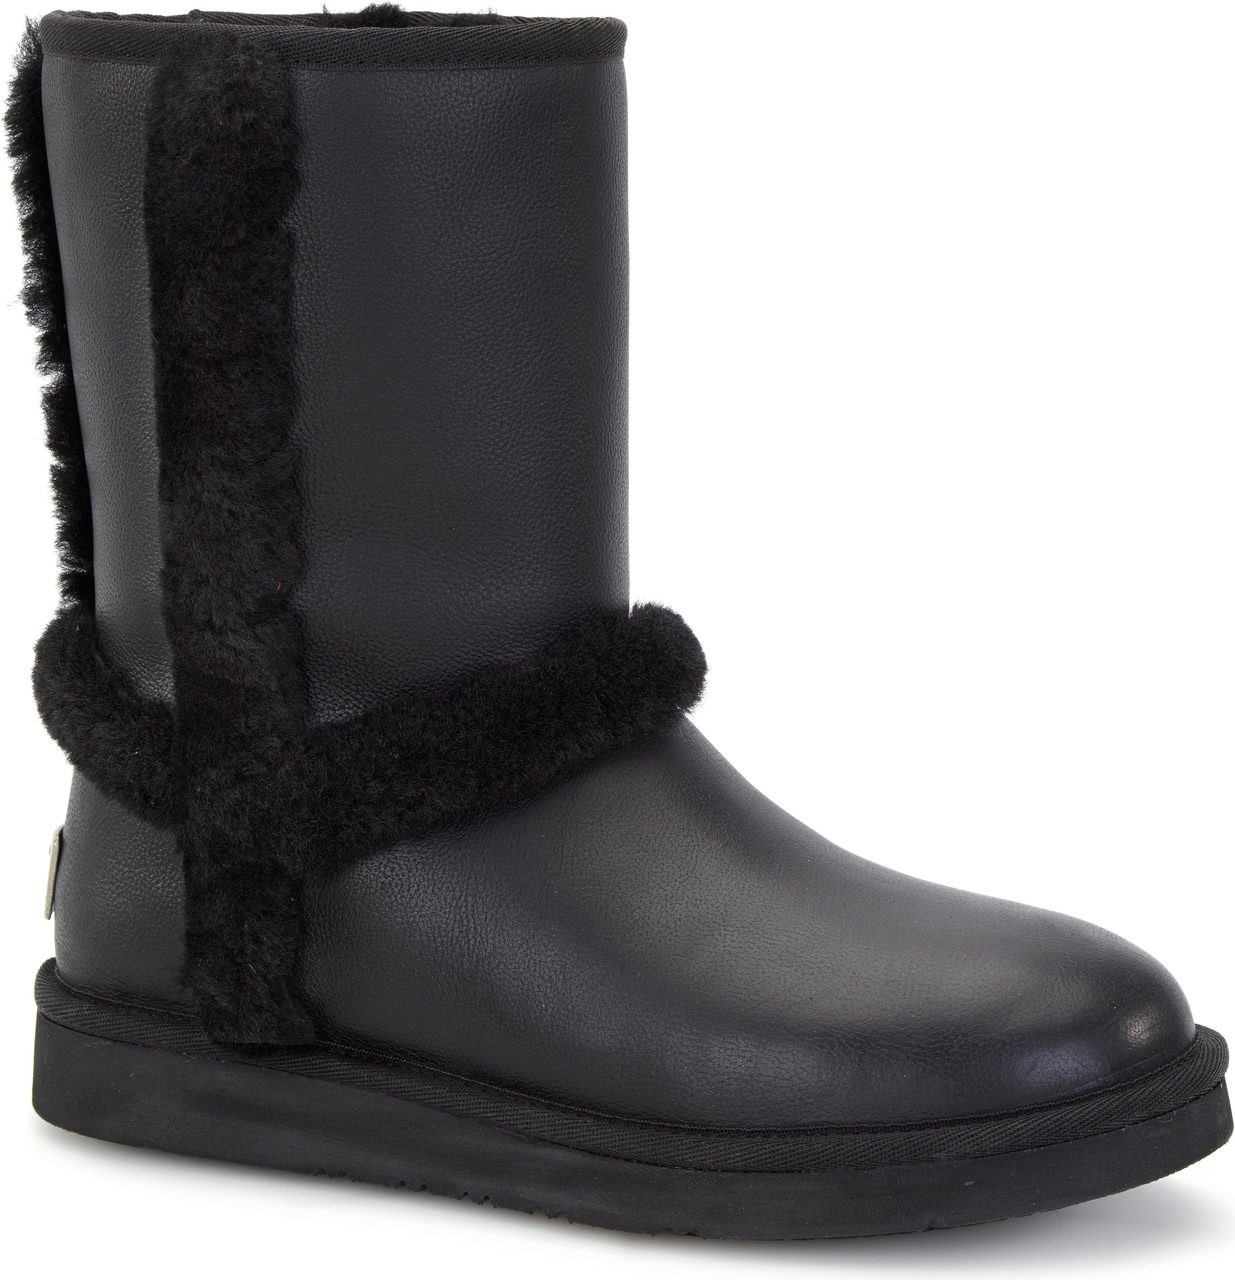 ... Boots; UGG Australia Women's Carter Leather. Black. Black; Chocolate